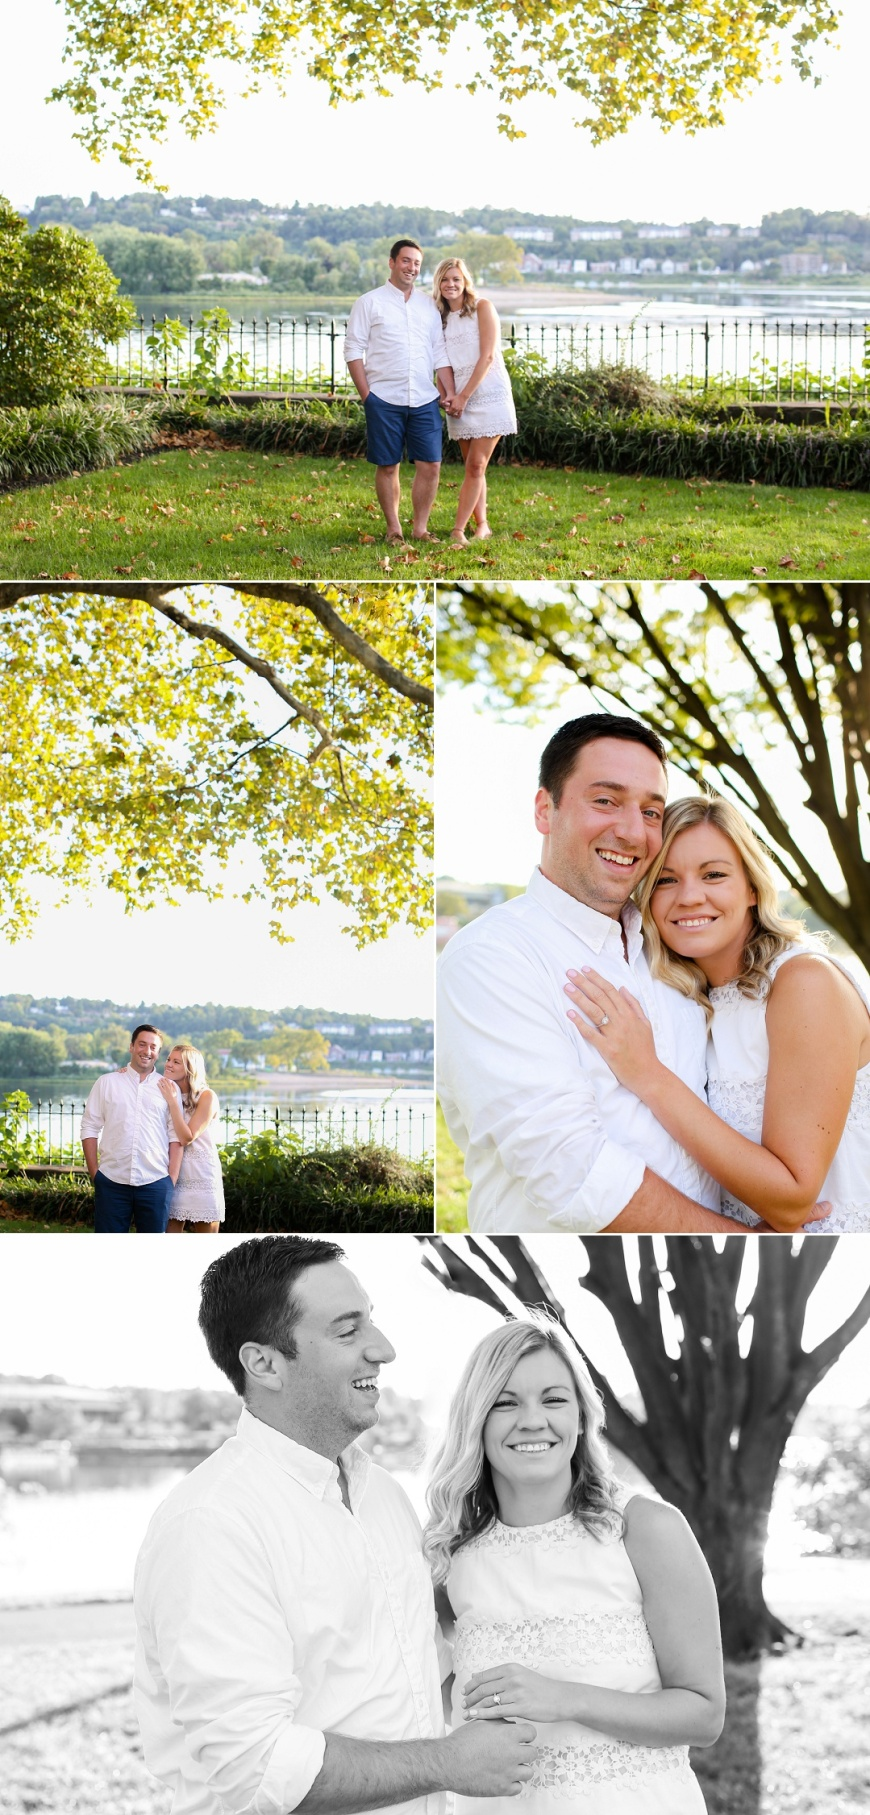 Downtown-Harrisburg-Waterfront-Engagement-Photographer_1003.jpg